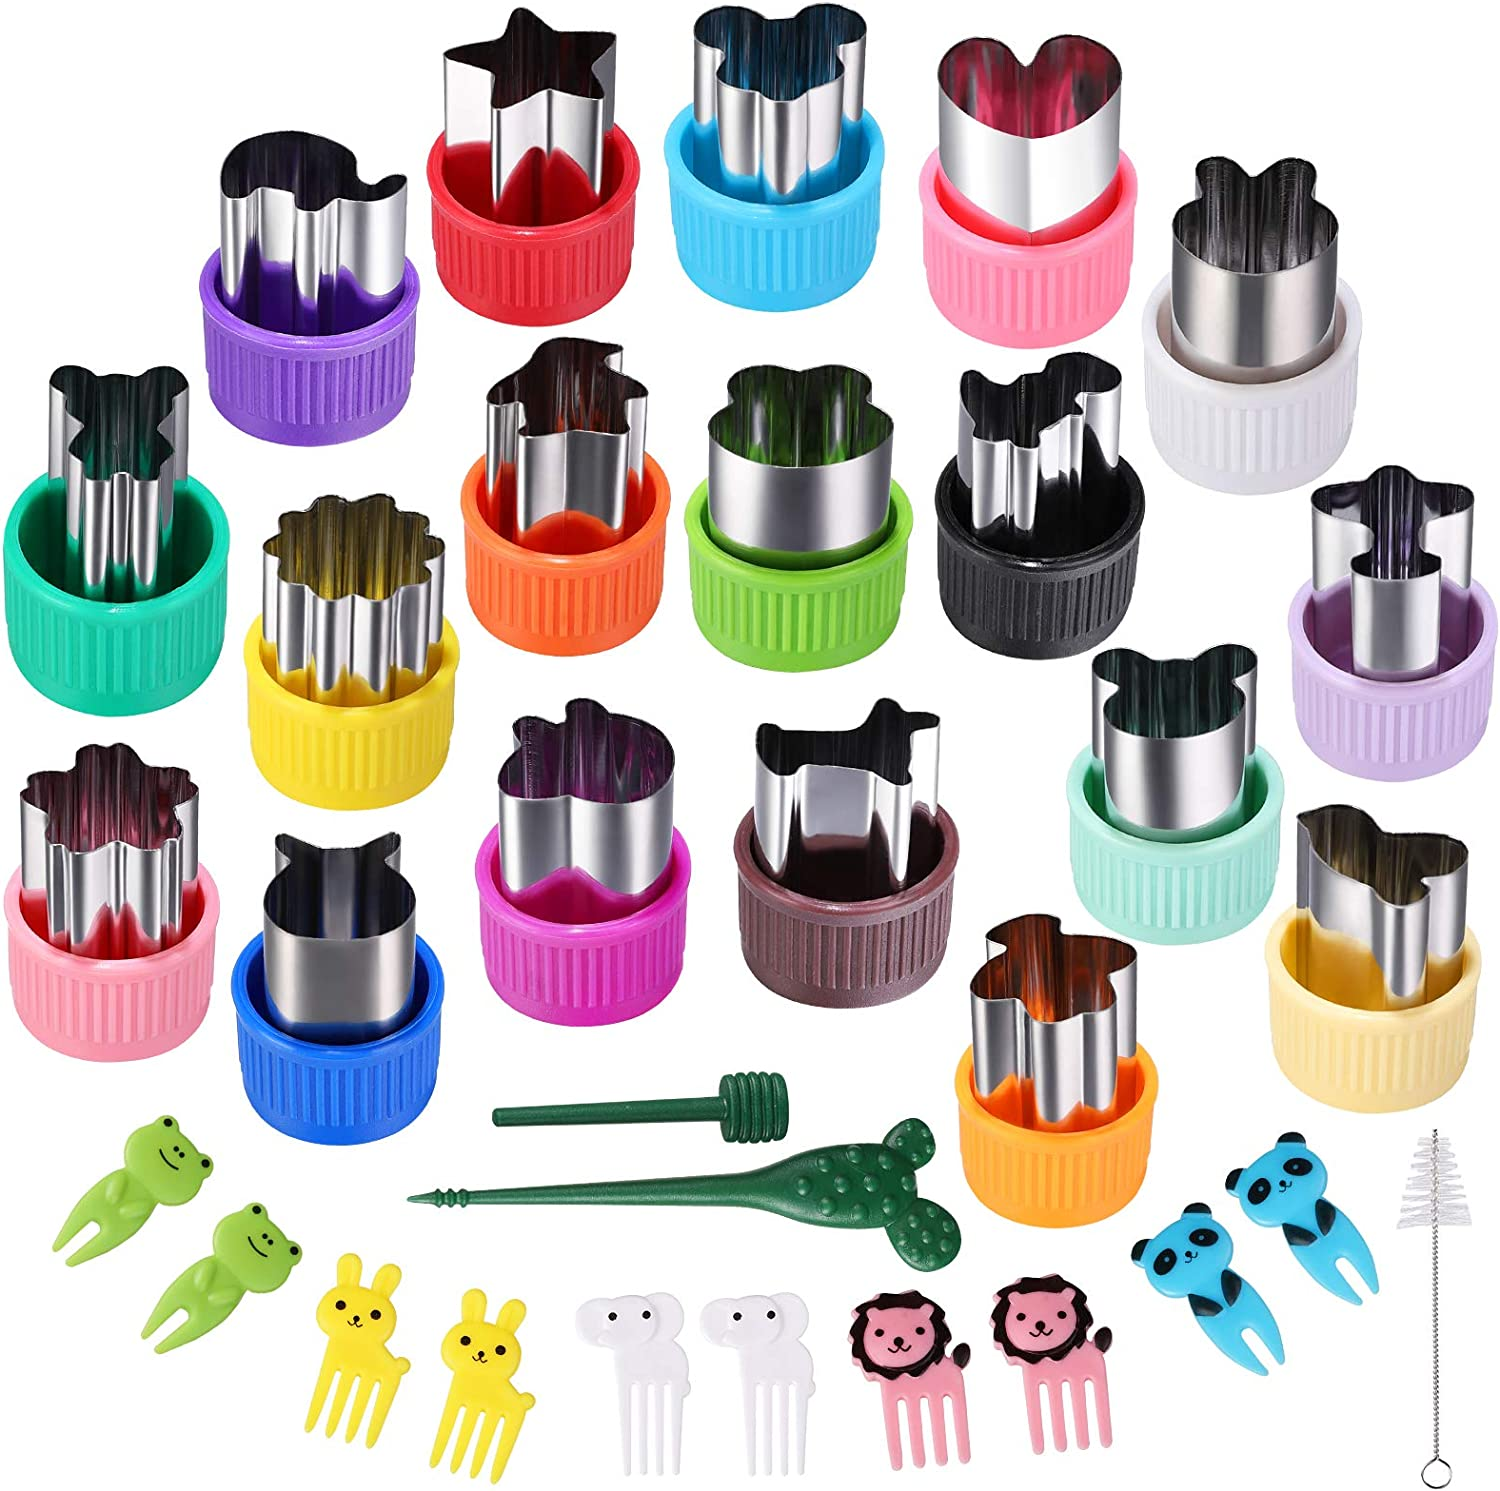 Vegetable Cutter Shapes Set,18pcs Diffent Colours and shapes Mini Sizes Cookie Cutters Set Fruit Cookie Pastry Stamps Mold,Baking Tools & Accessories